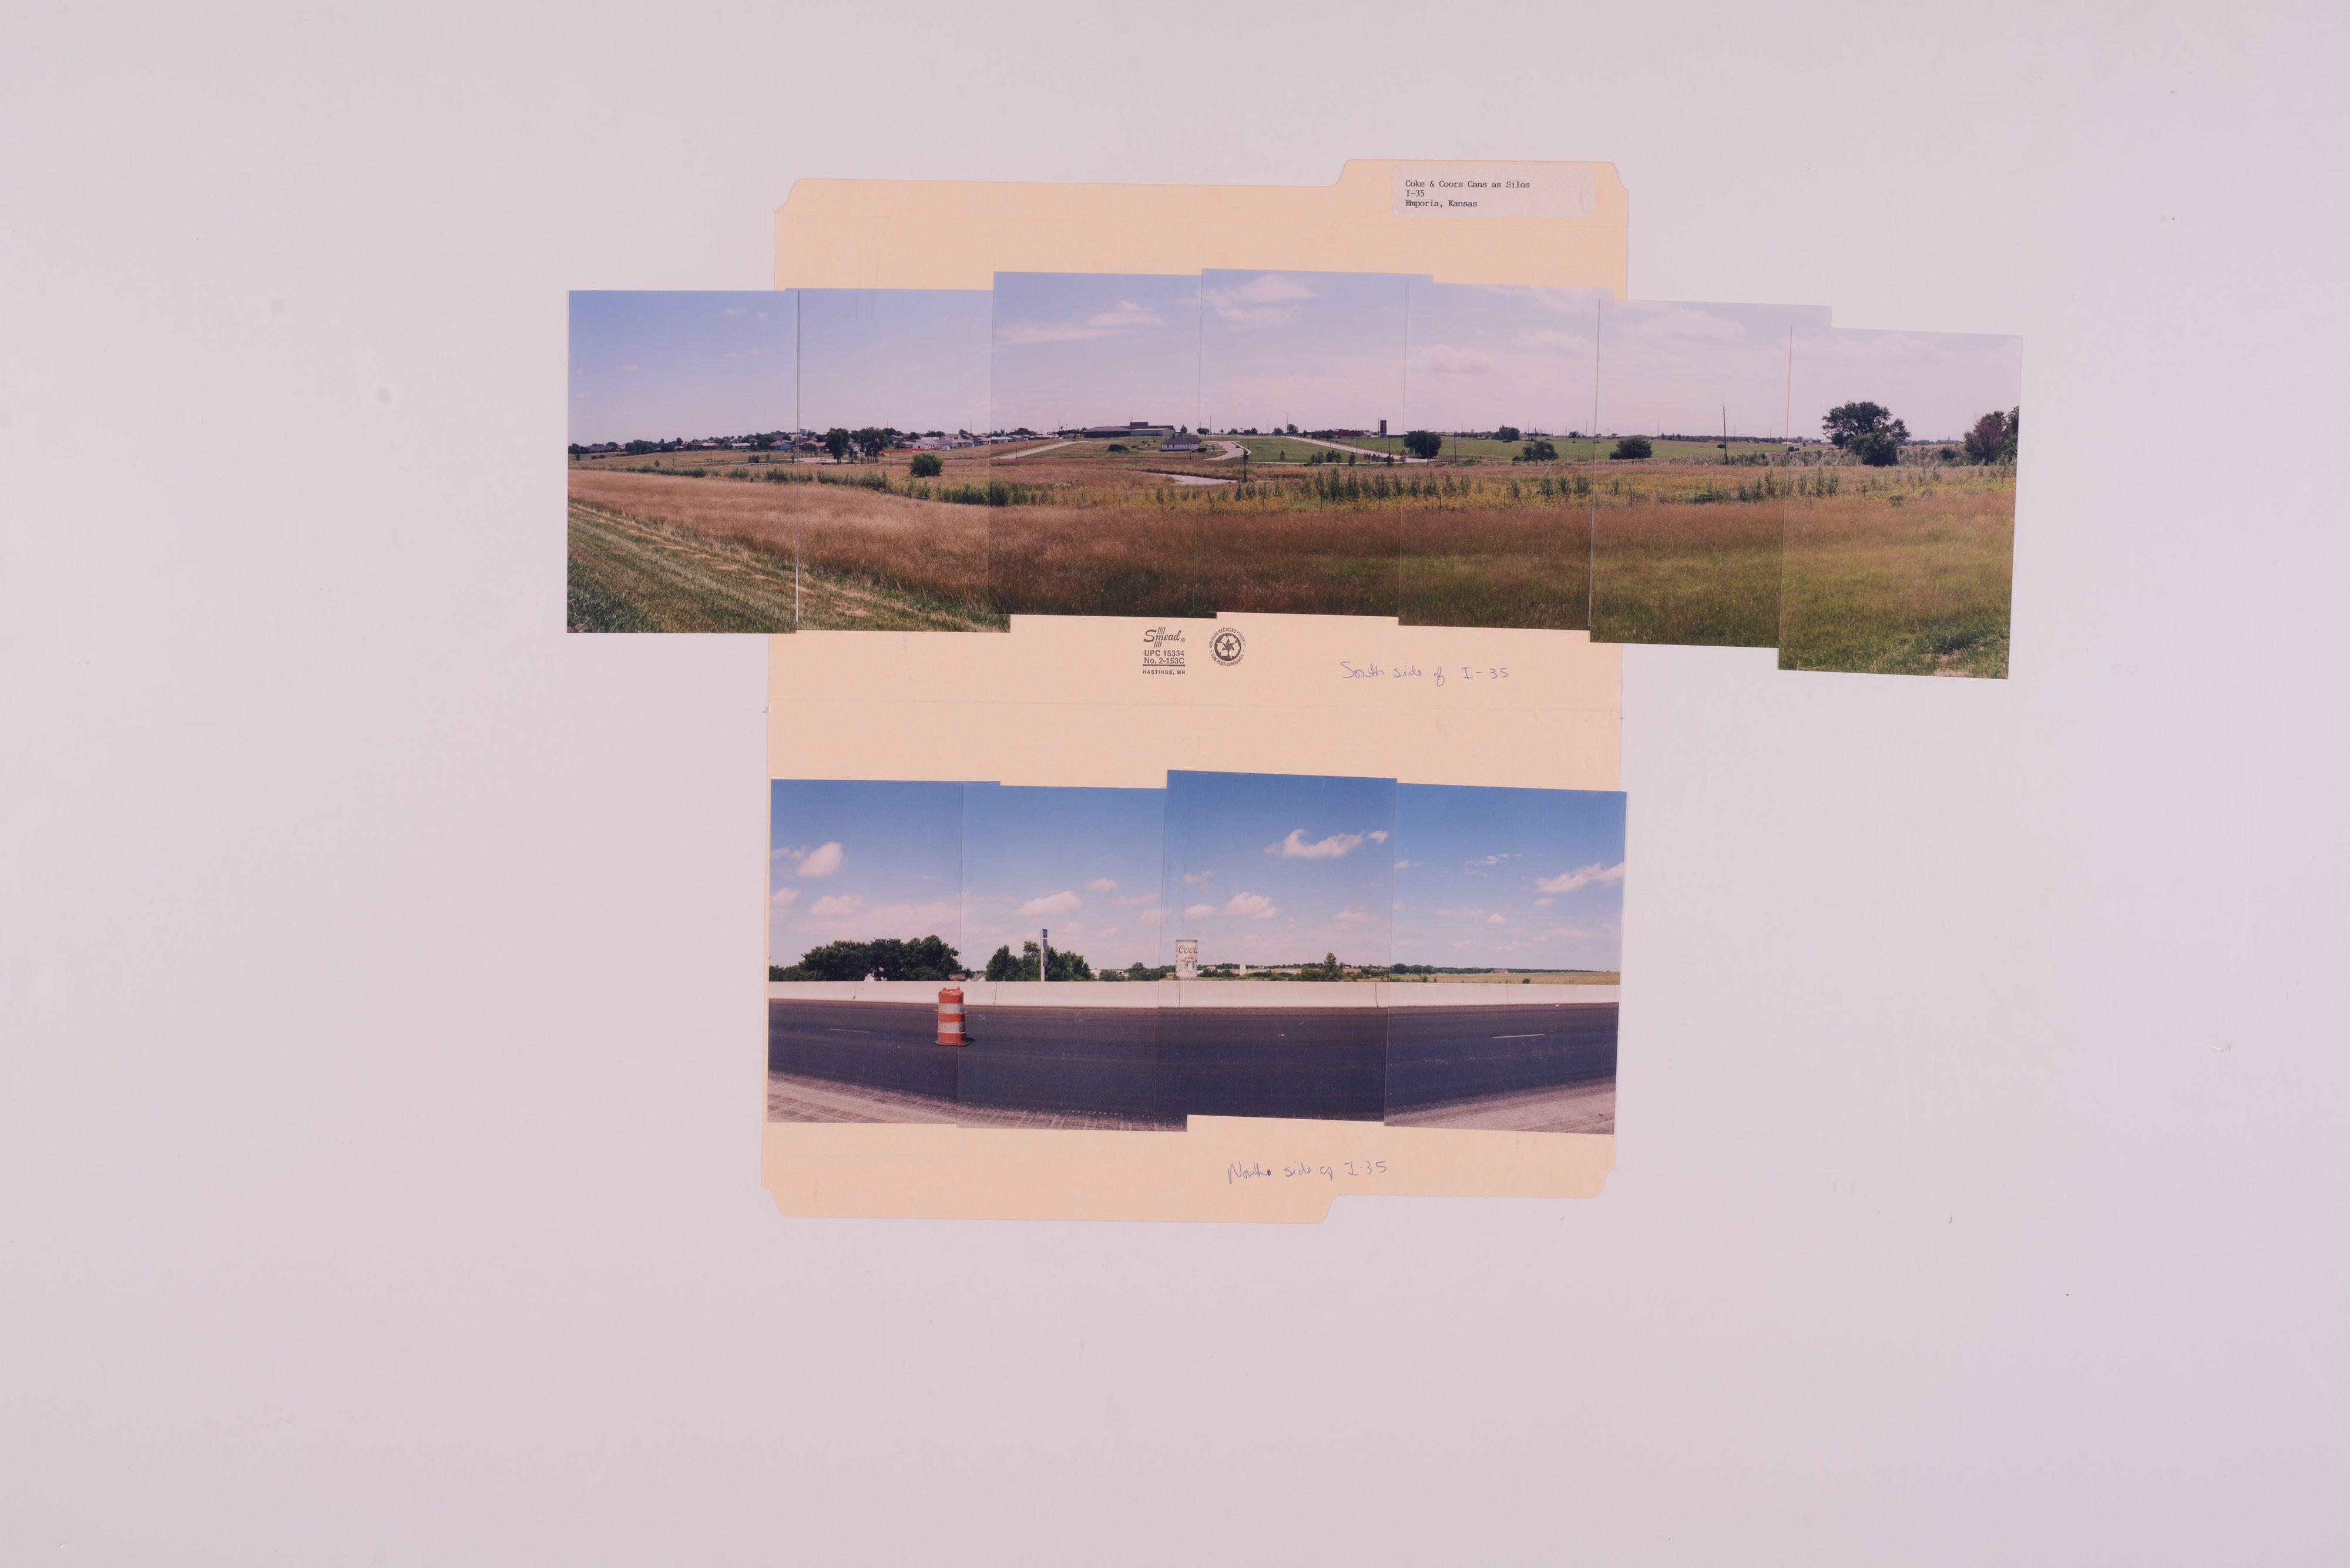 Kansas Film Commission site photographs, subject highway signs - hospitals - 2